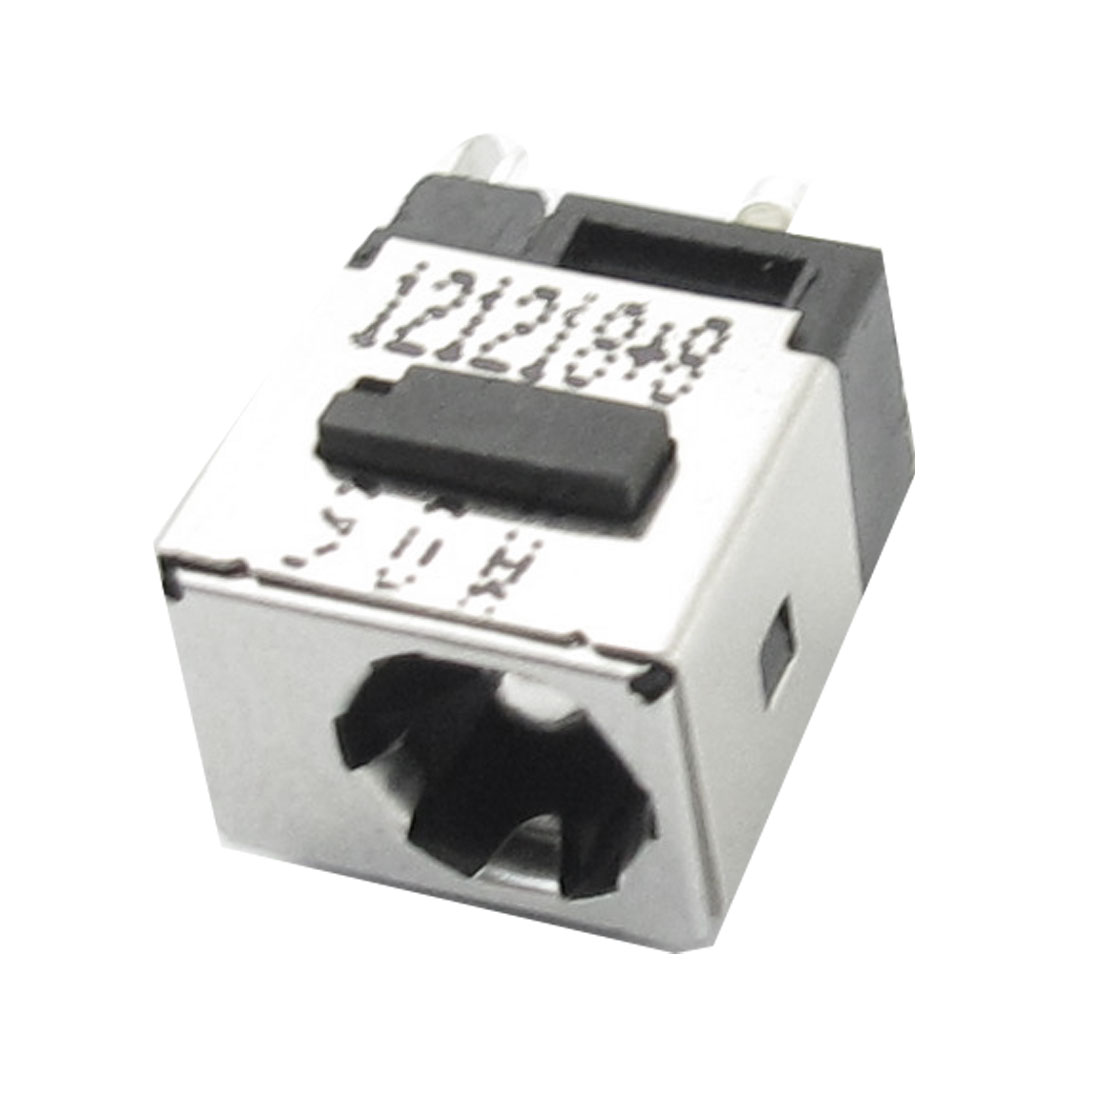 Laptops Notebook DC Power Jack Connector Socket PJ193